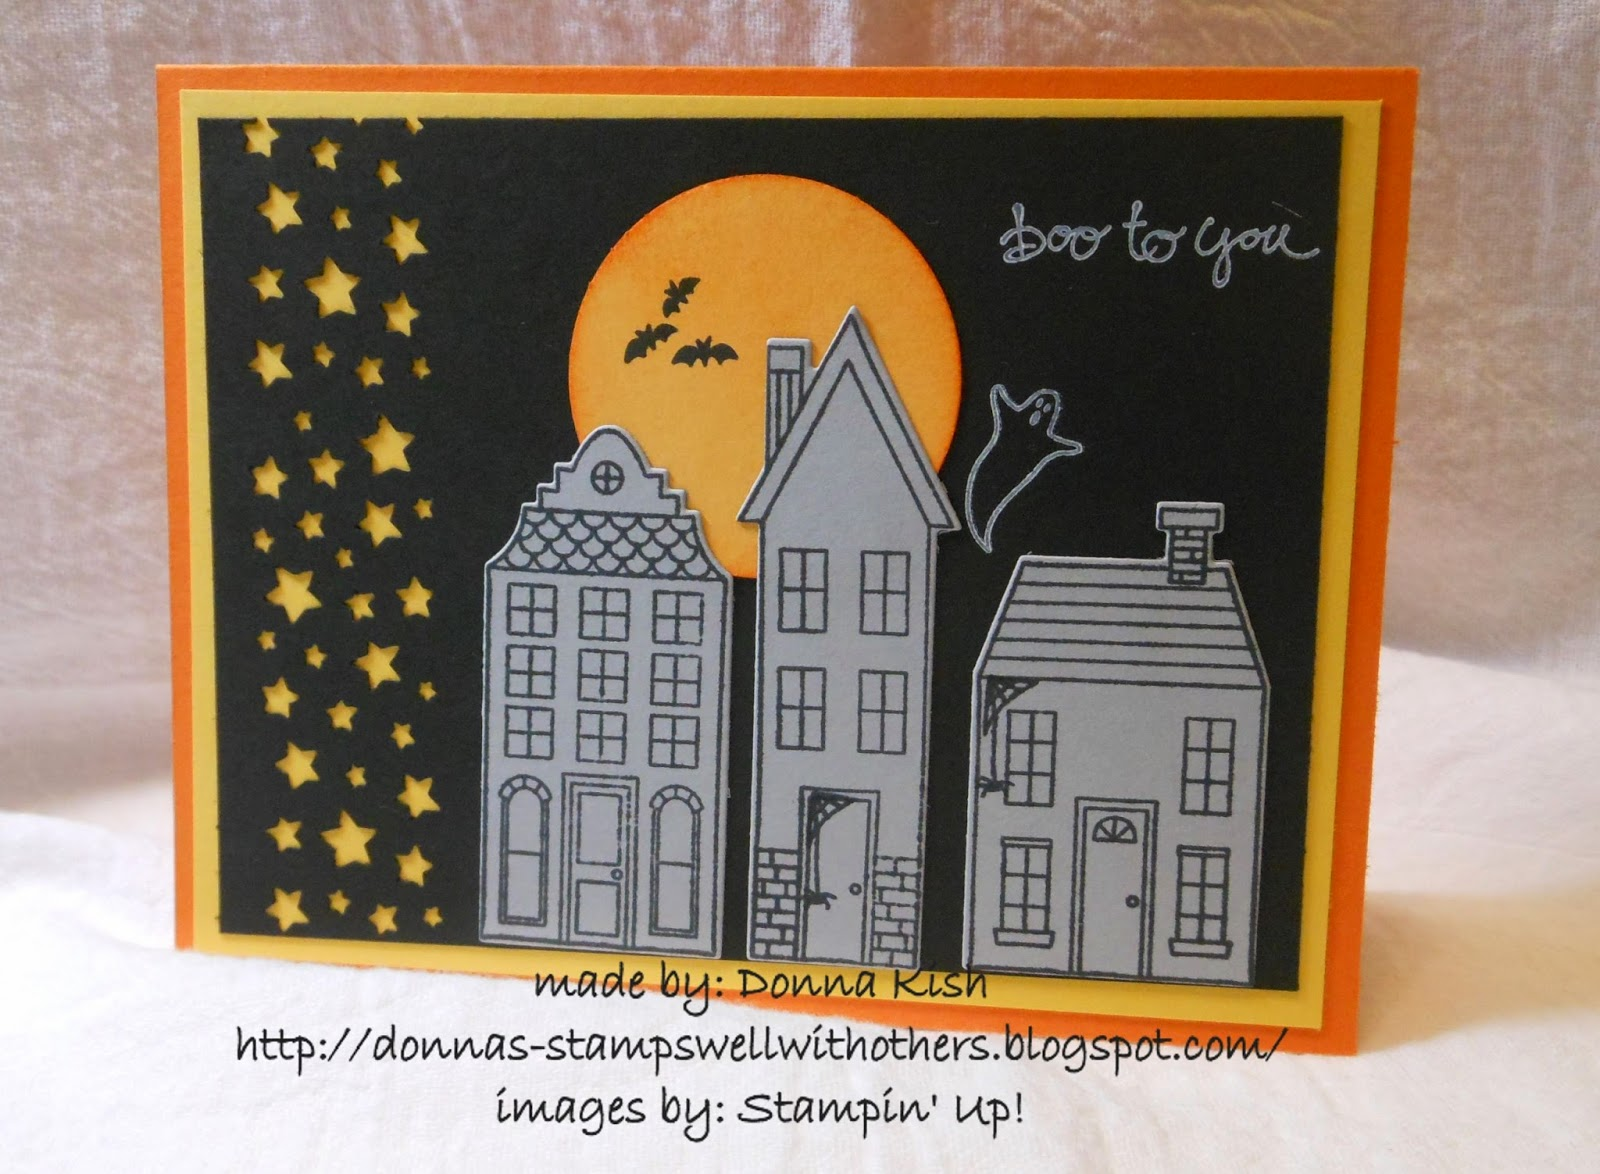 http://donnas-stampswellwithothers.blogspot.com/2014/10/holiday-home-boo-to-you.html